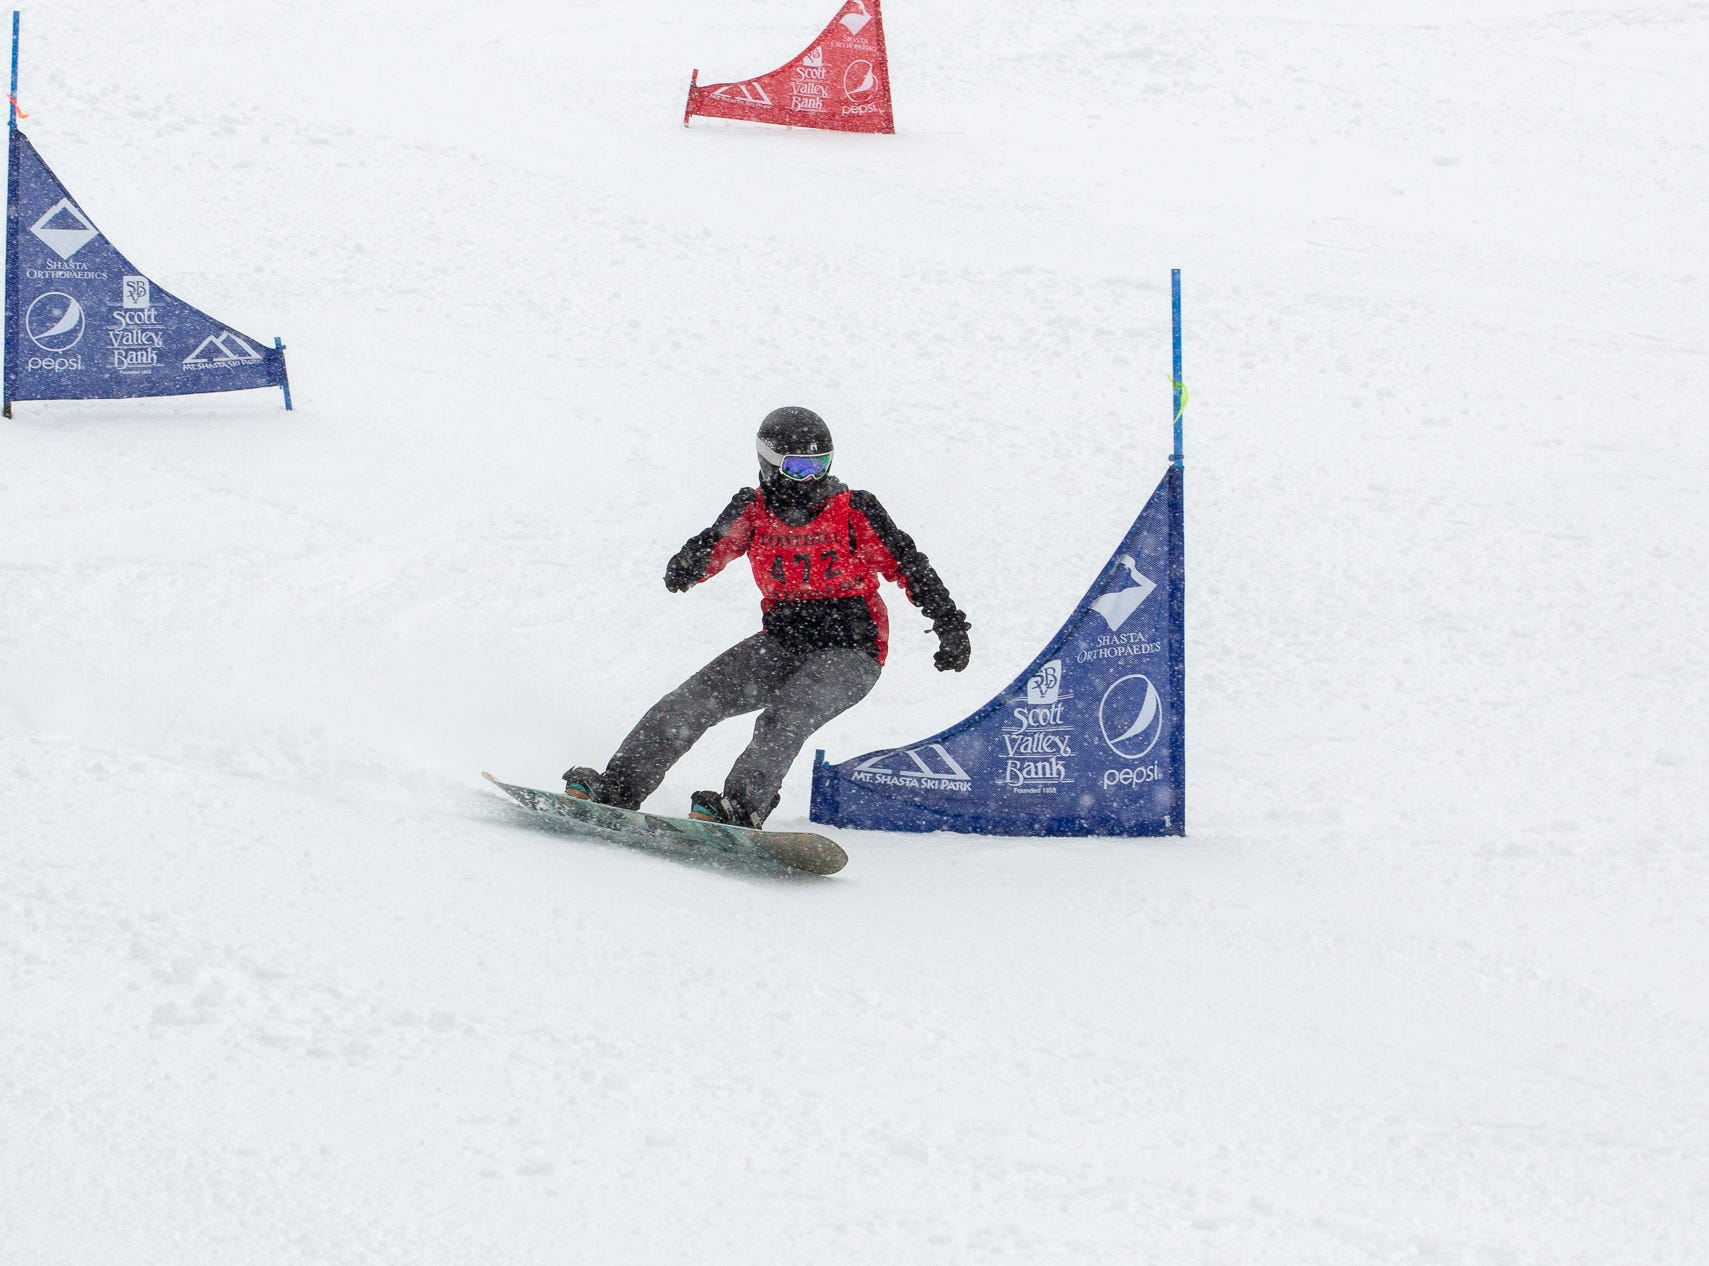 Mattie McKee of Foothill High competes in the girls slalom at the 2019 snowboard state championships held March 4-5 at Mt. Shasta Ski Park.